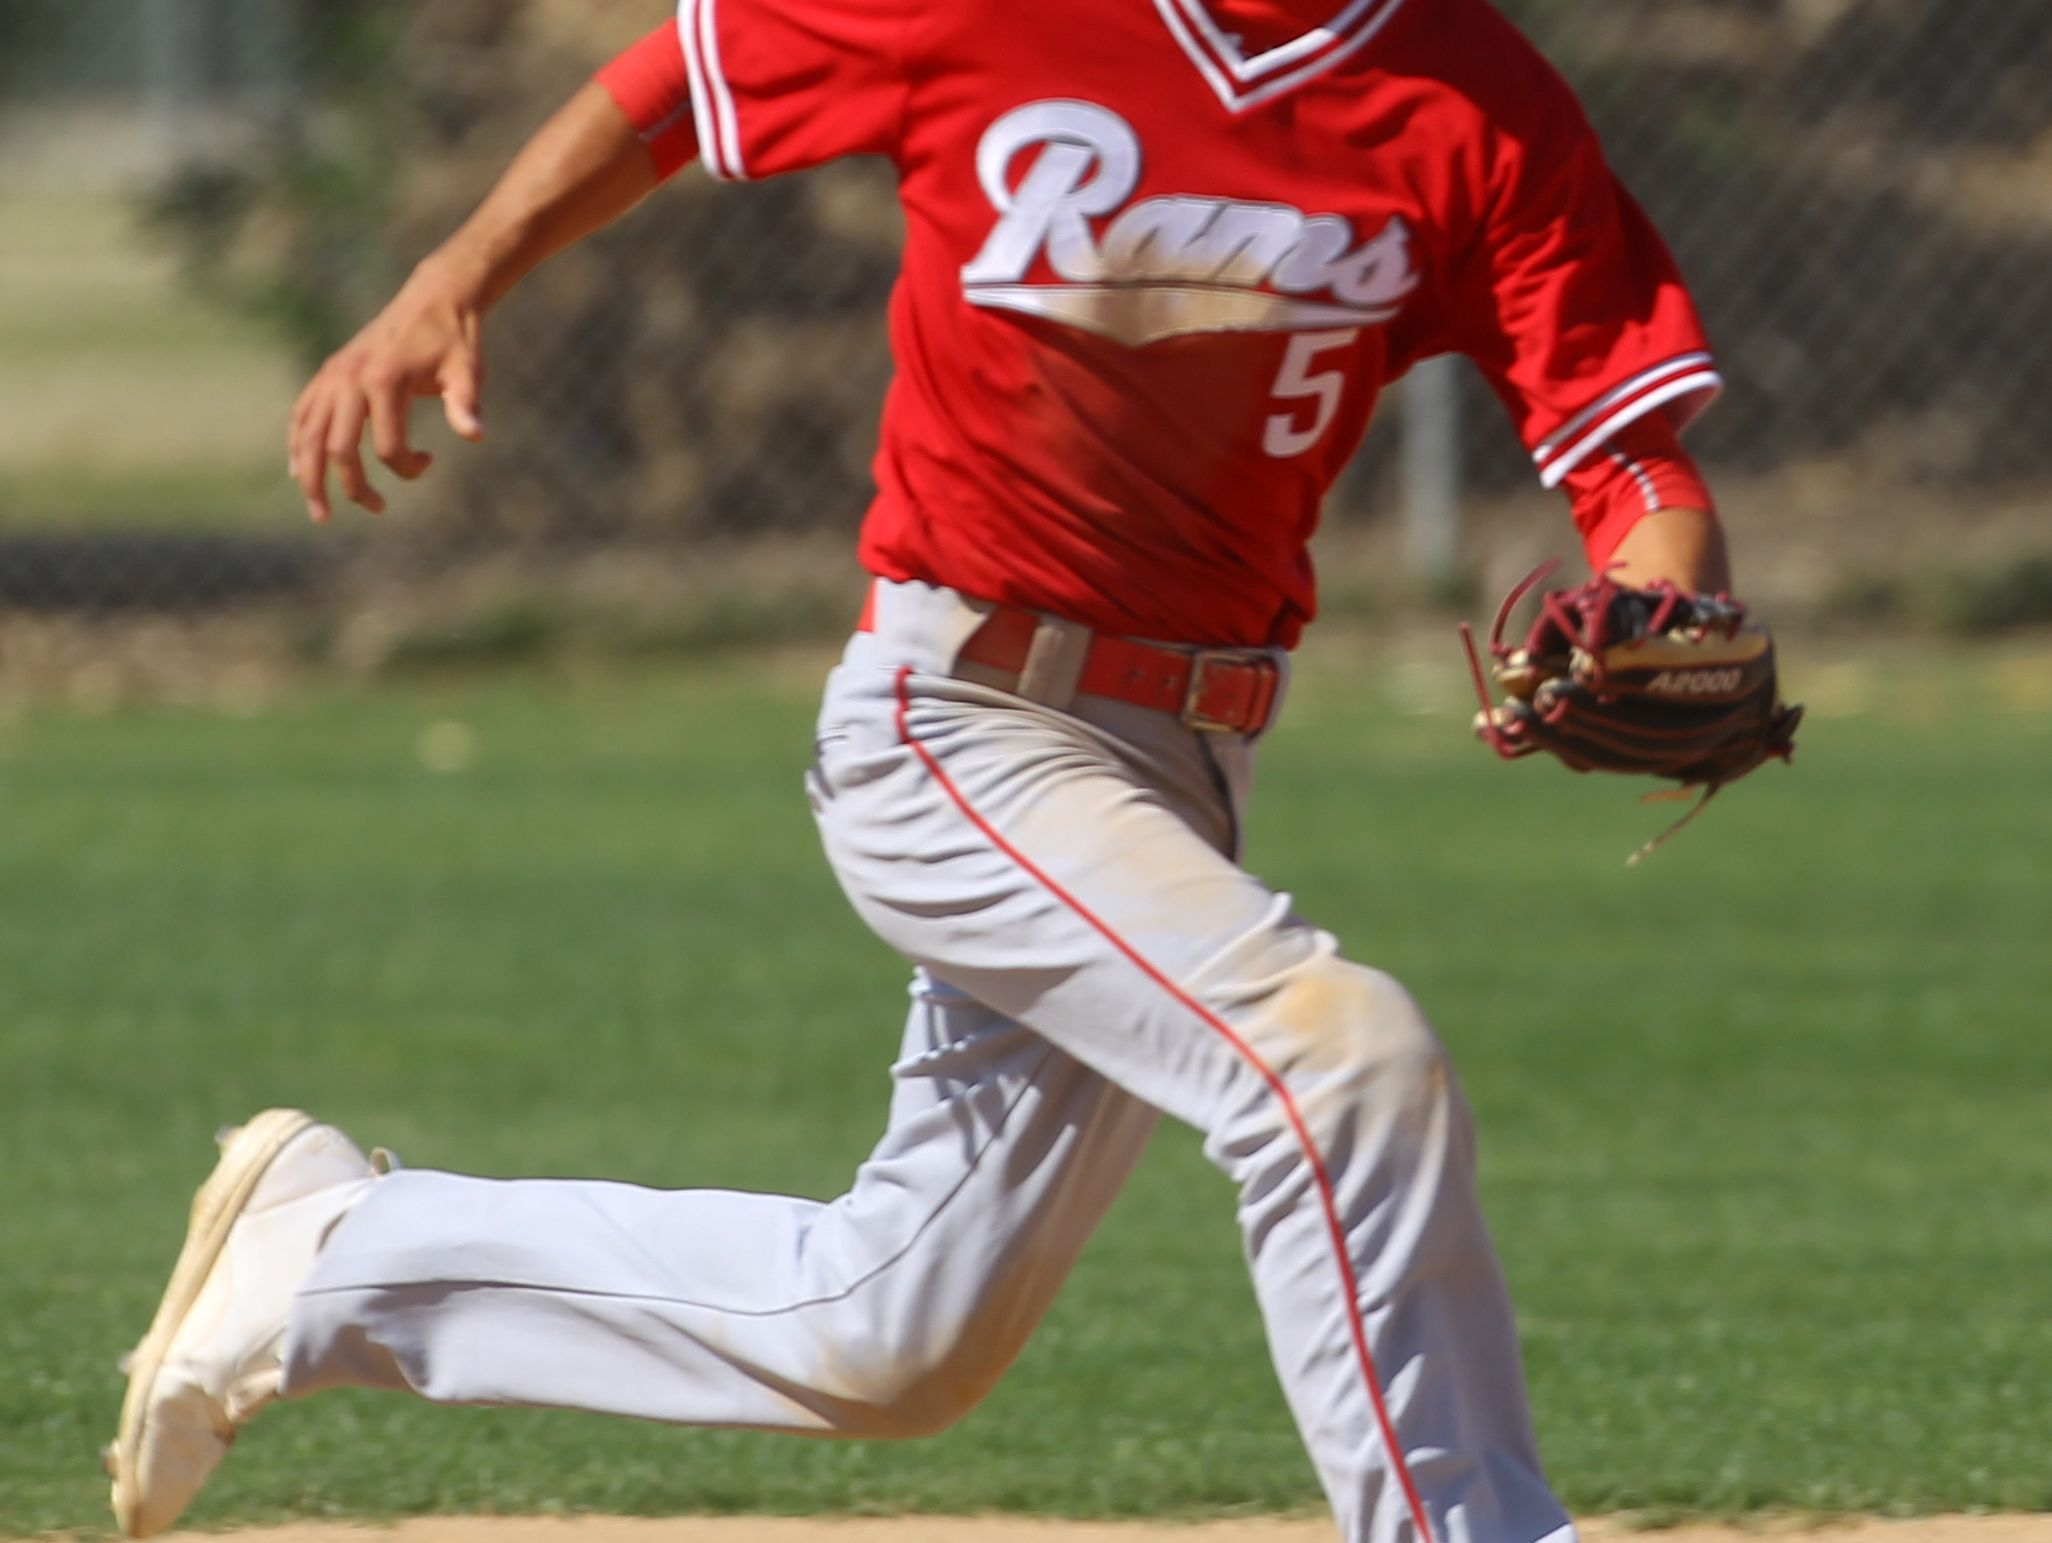 Desert Mirage High School's #5 runs down a ball hit by Coachella Valley High School during their game in Thermal.